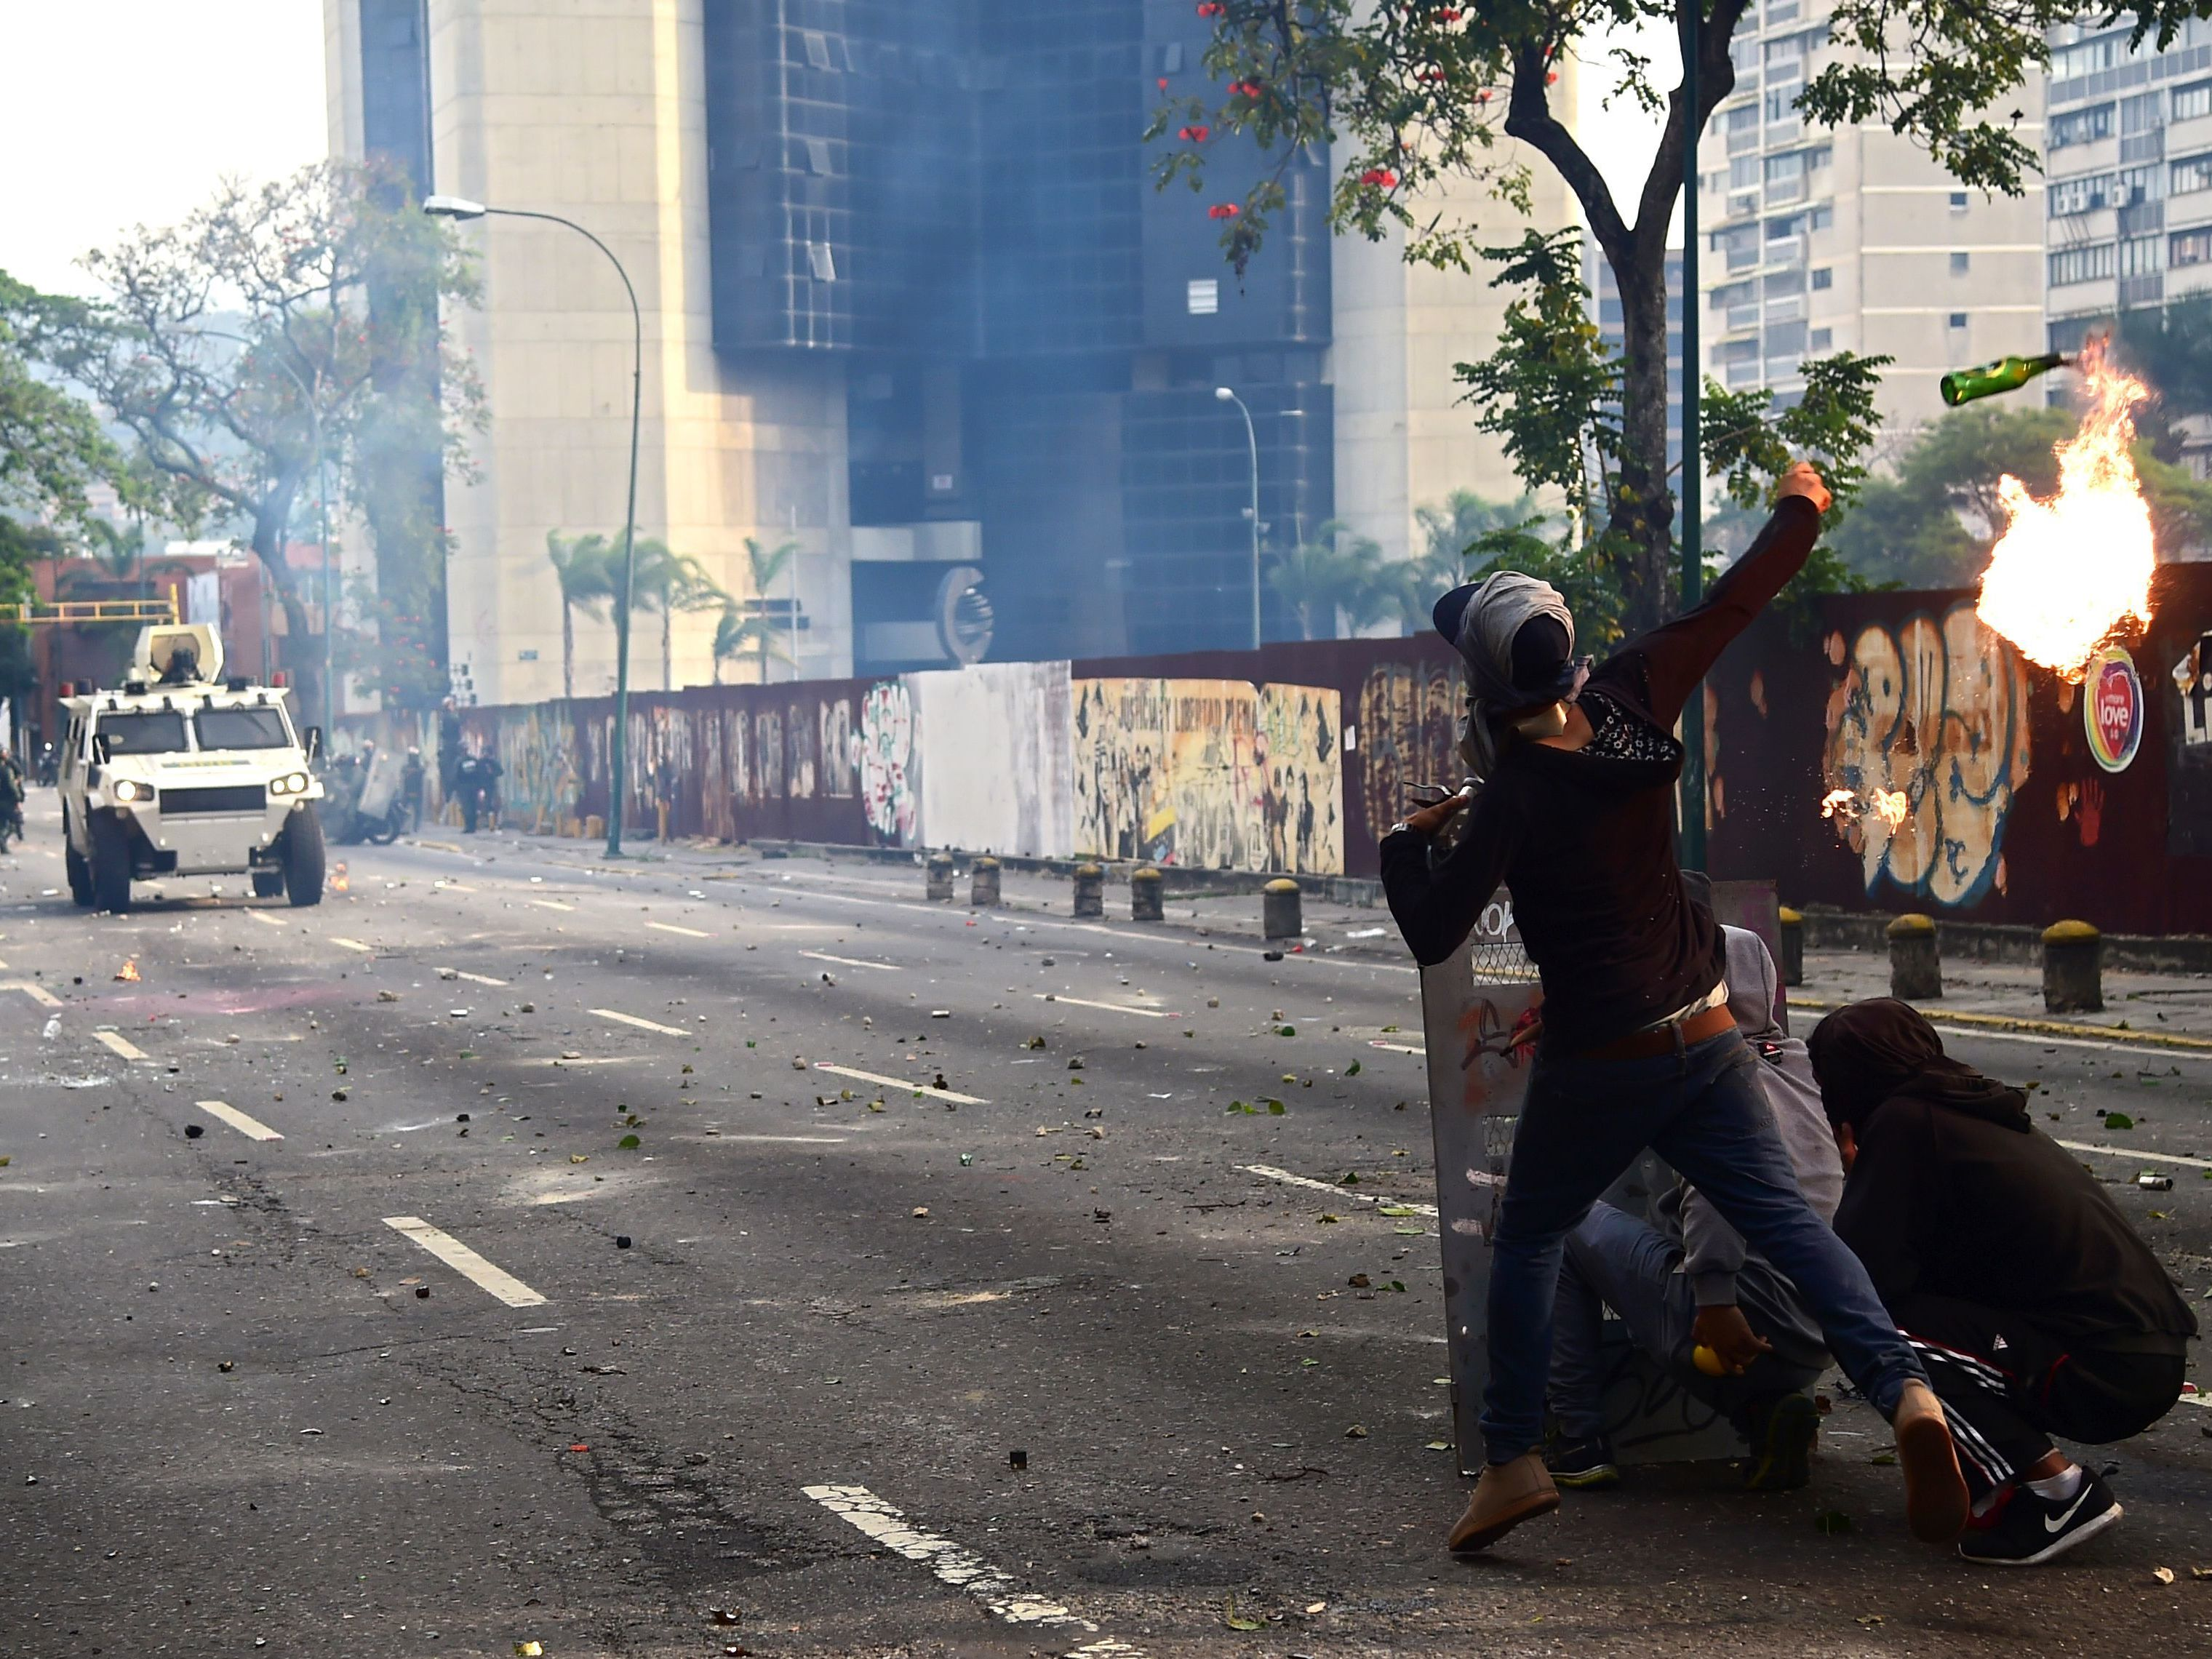 Demonstrators hurl flaming objects at riot police during a rally in Caracas against Venezuelan President Nicolas Maduro on Wednesday.     (Ronaldo Schemidt/AFP/Getty Images)